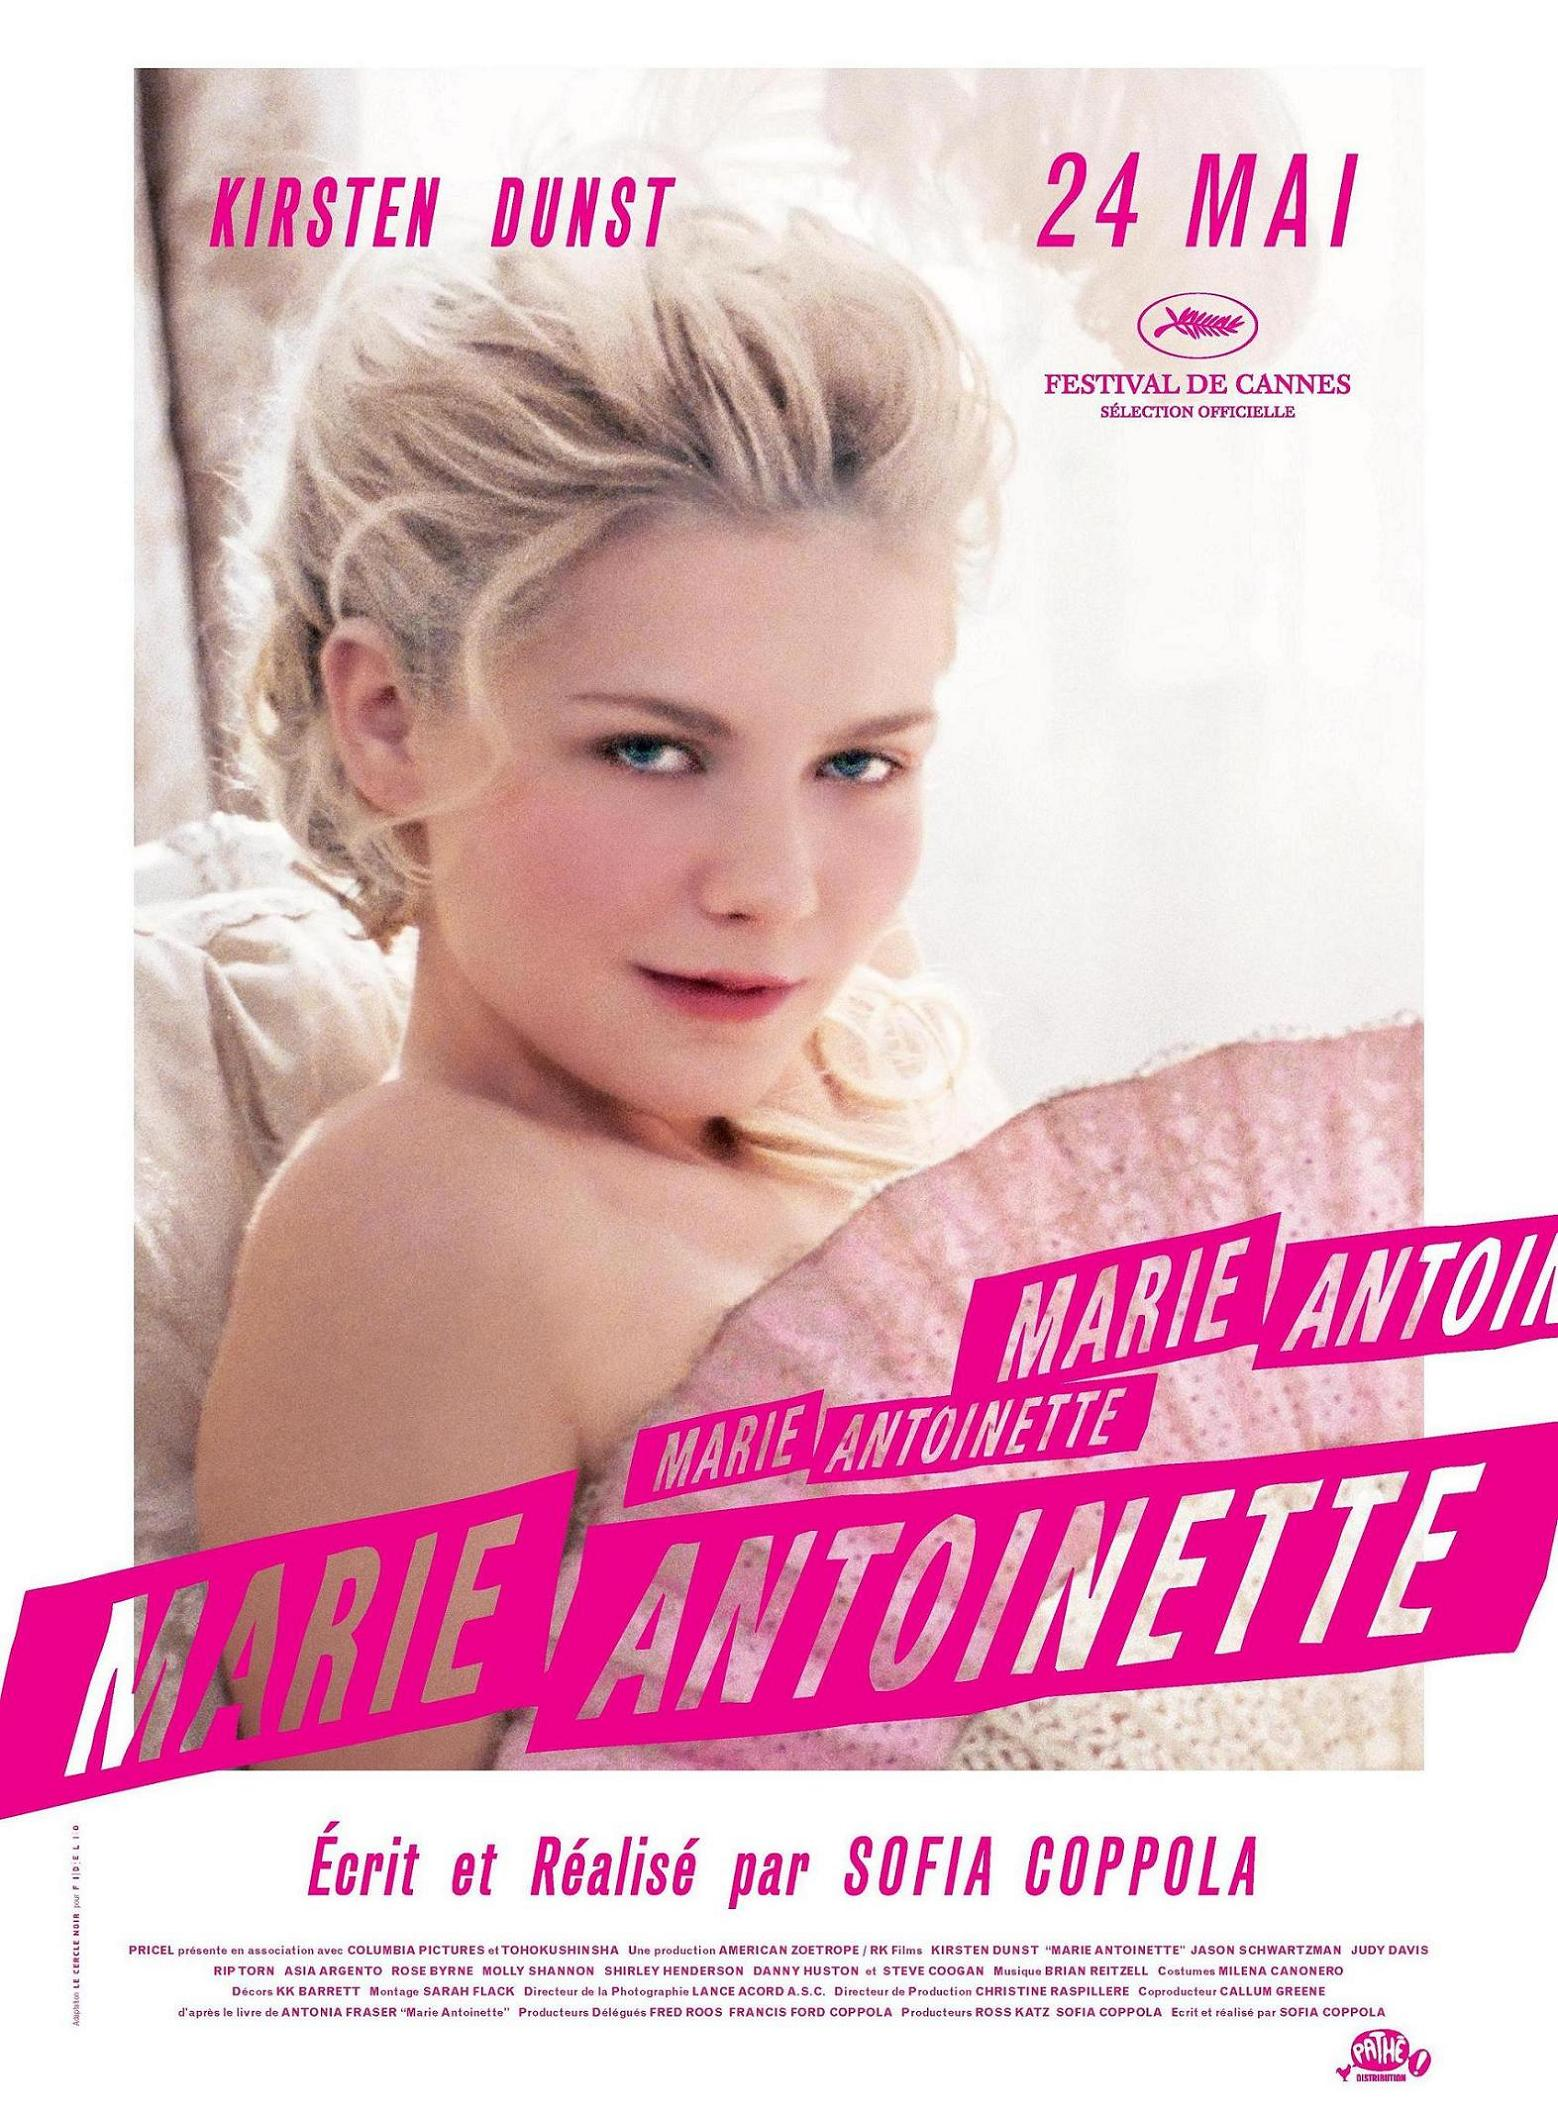 Marie Antionette